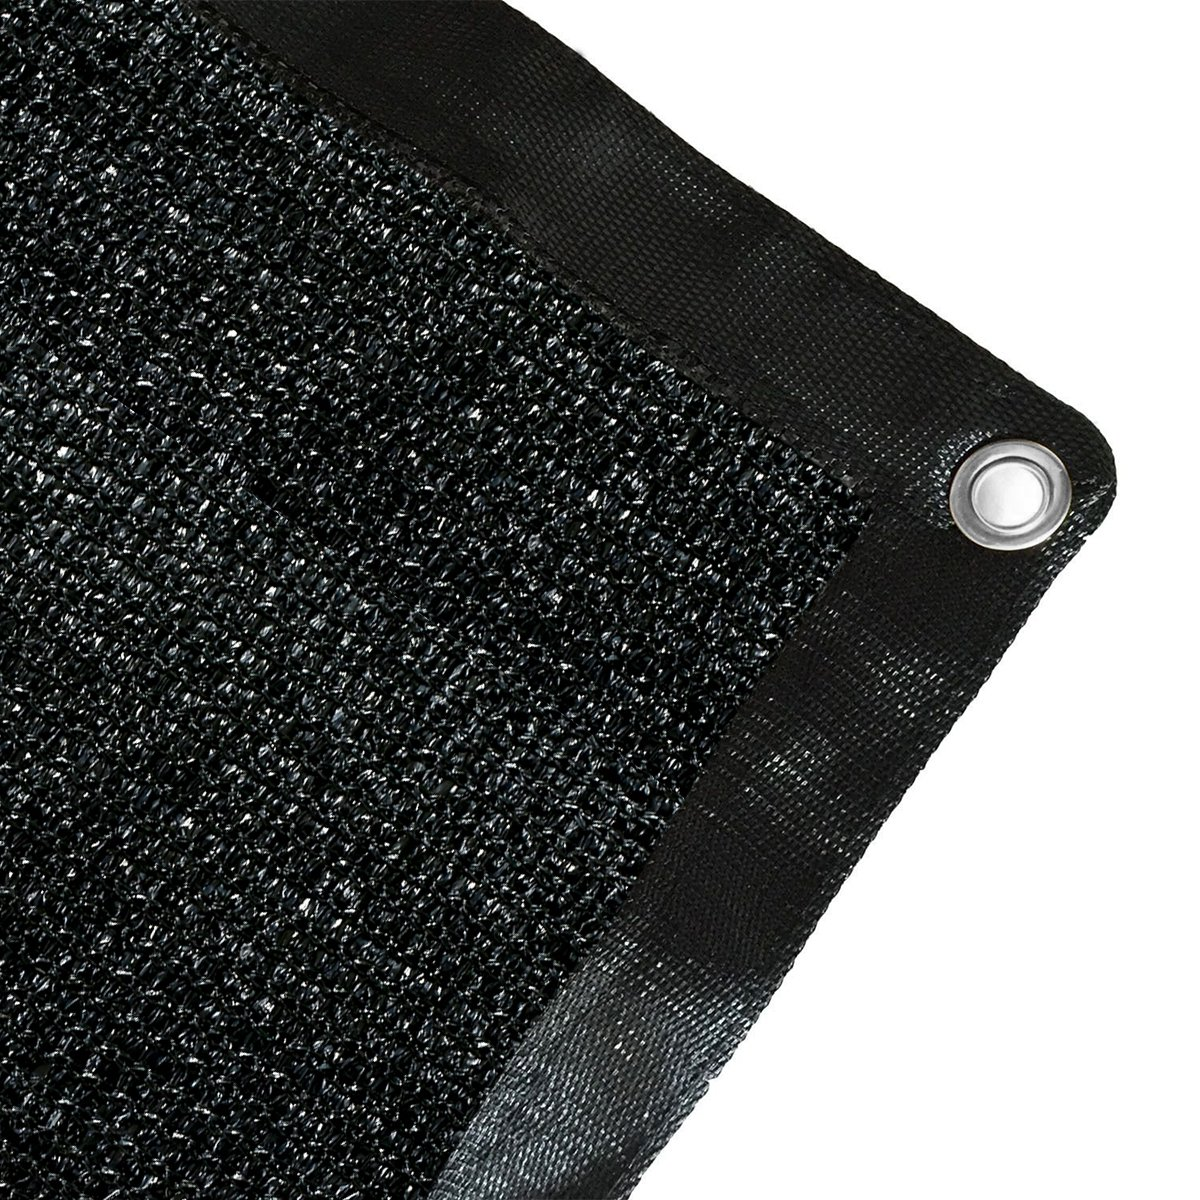 Ecover 12x12ft Sun Mesh Shade Panel,90% Shade Cloth UV Sunblock with Grommets for Patio/Pergola/Canopy,Black